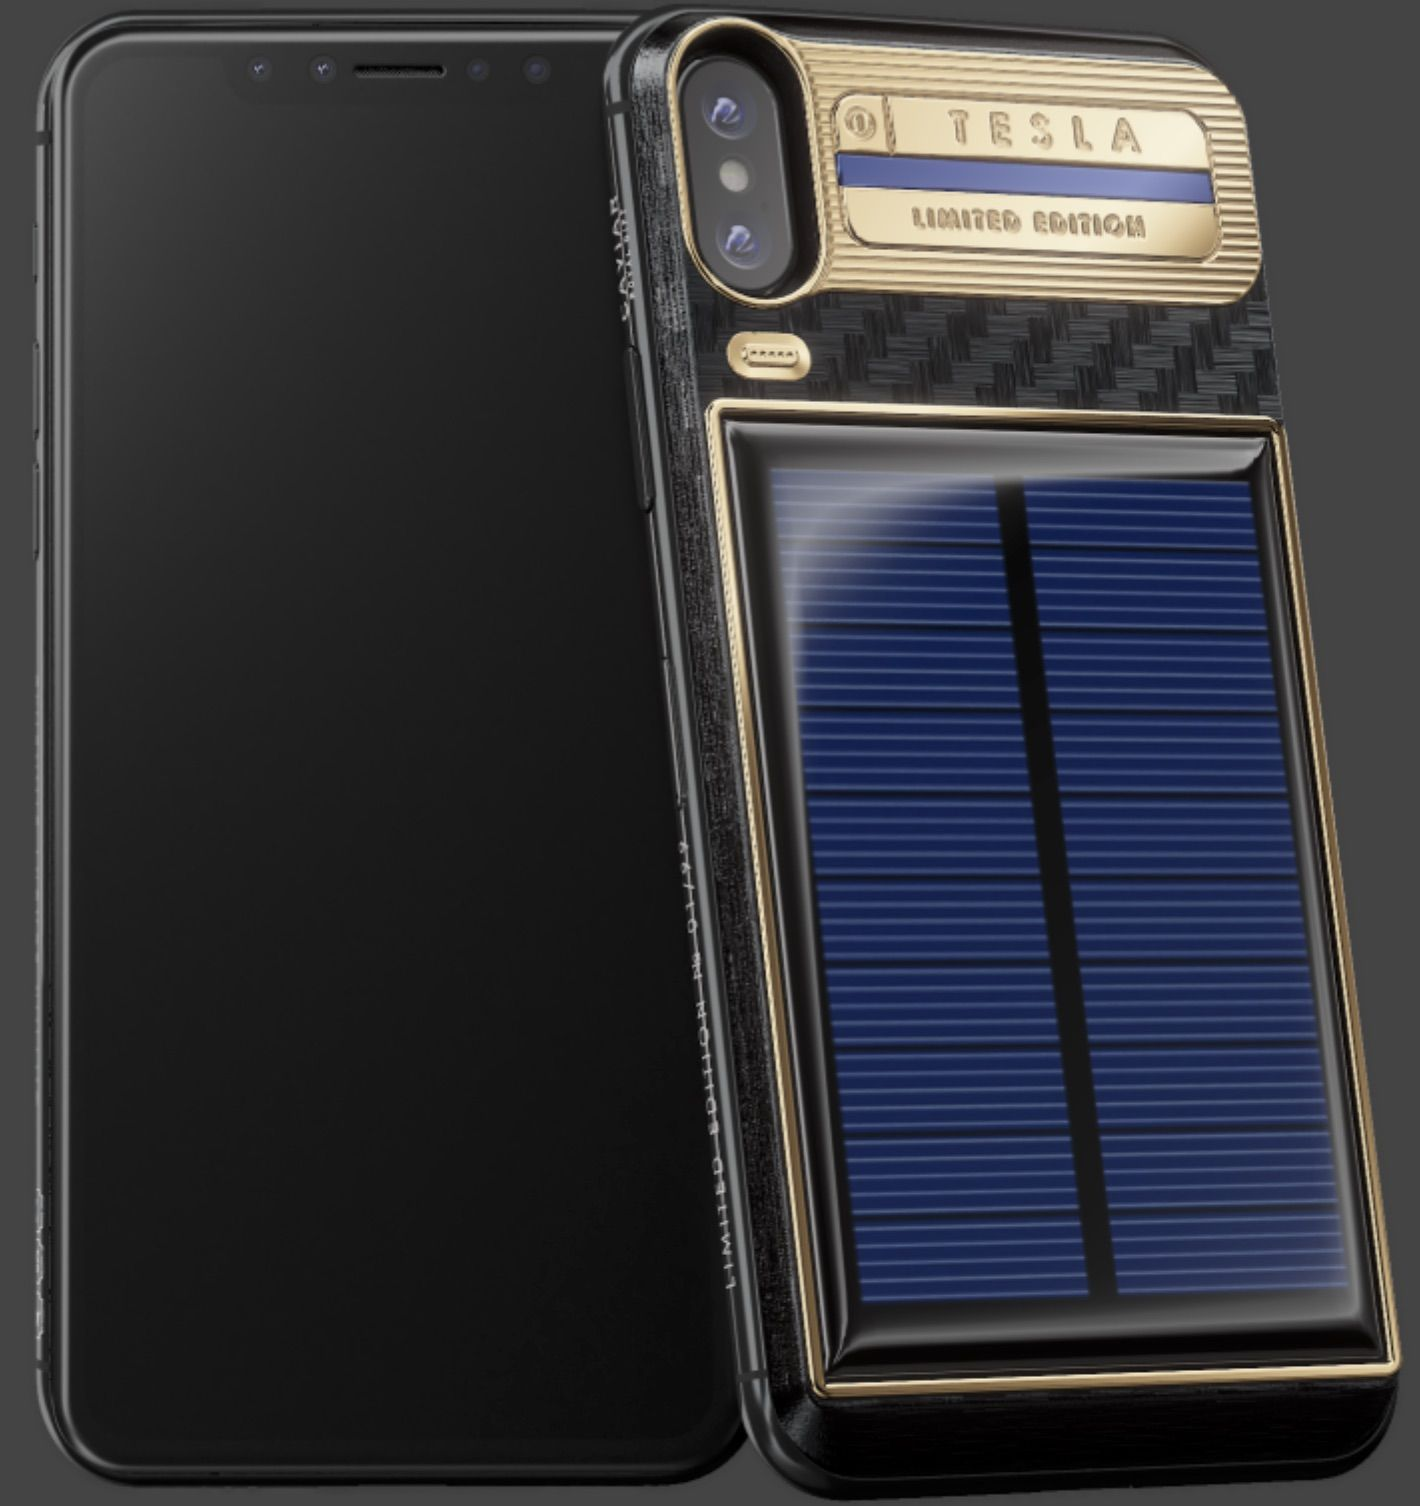 New Caviar Custom iPhone X costs more than 4,000 dollars.jpg